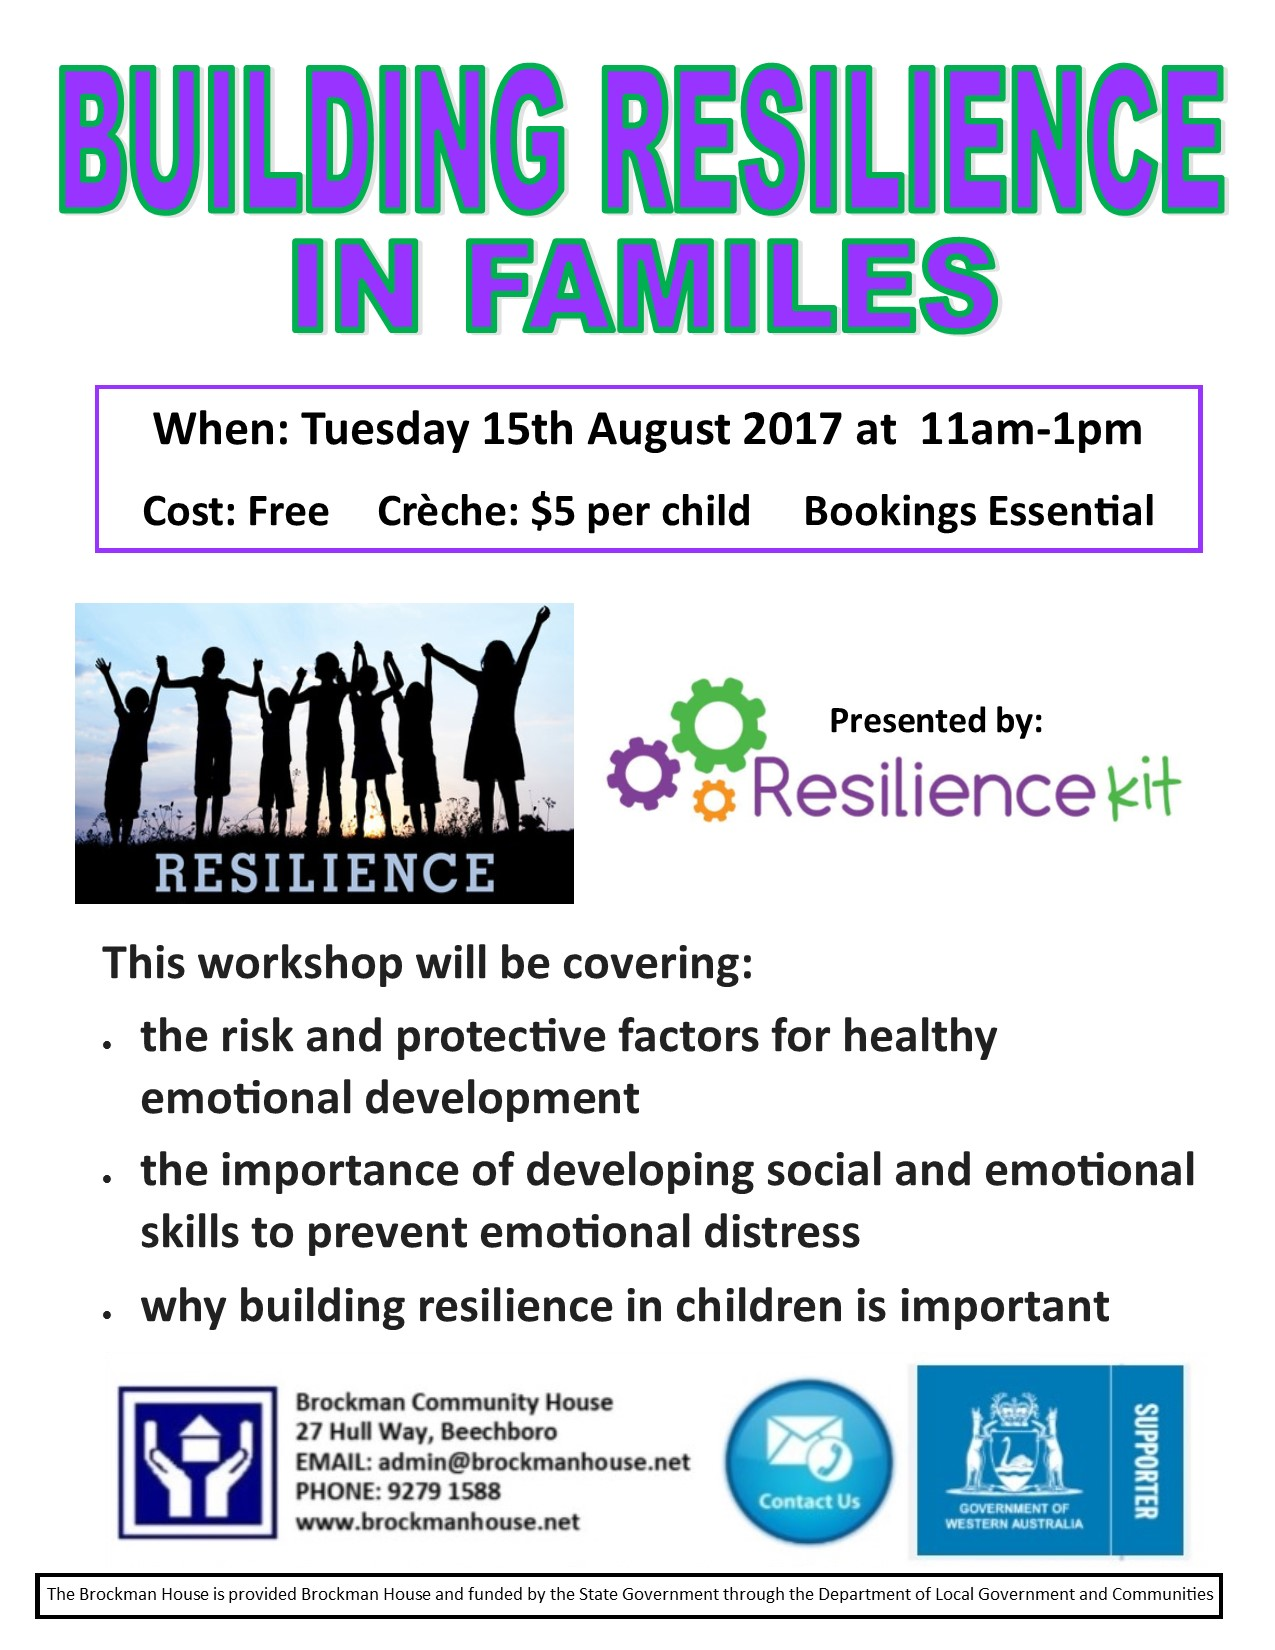 Building Resilience in Families